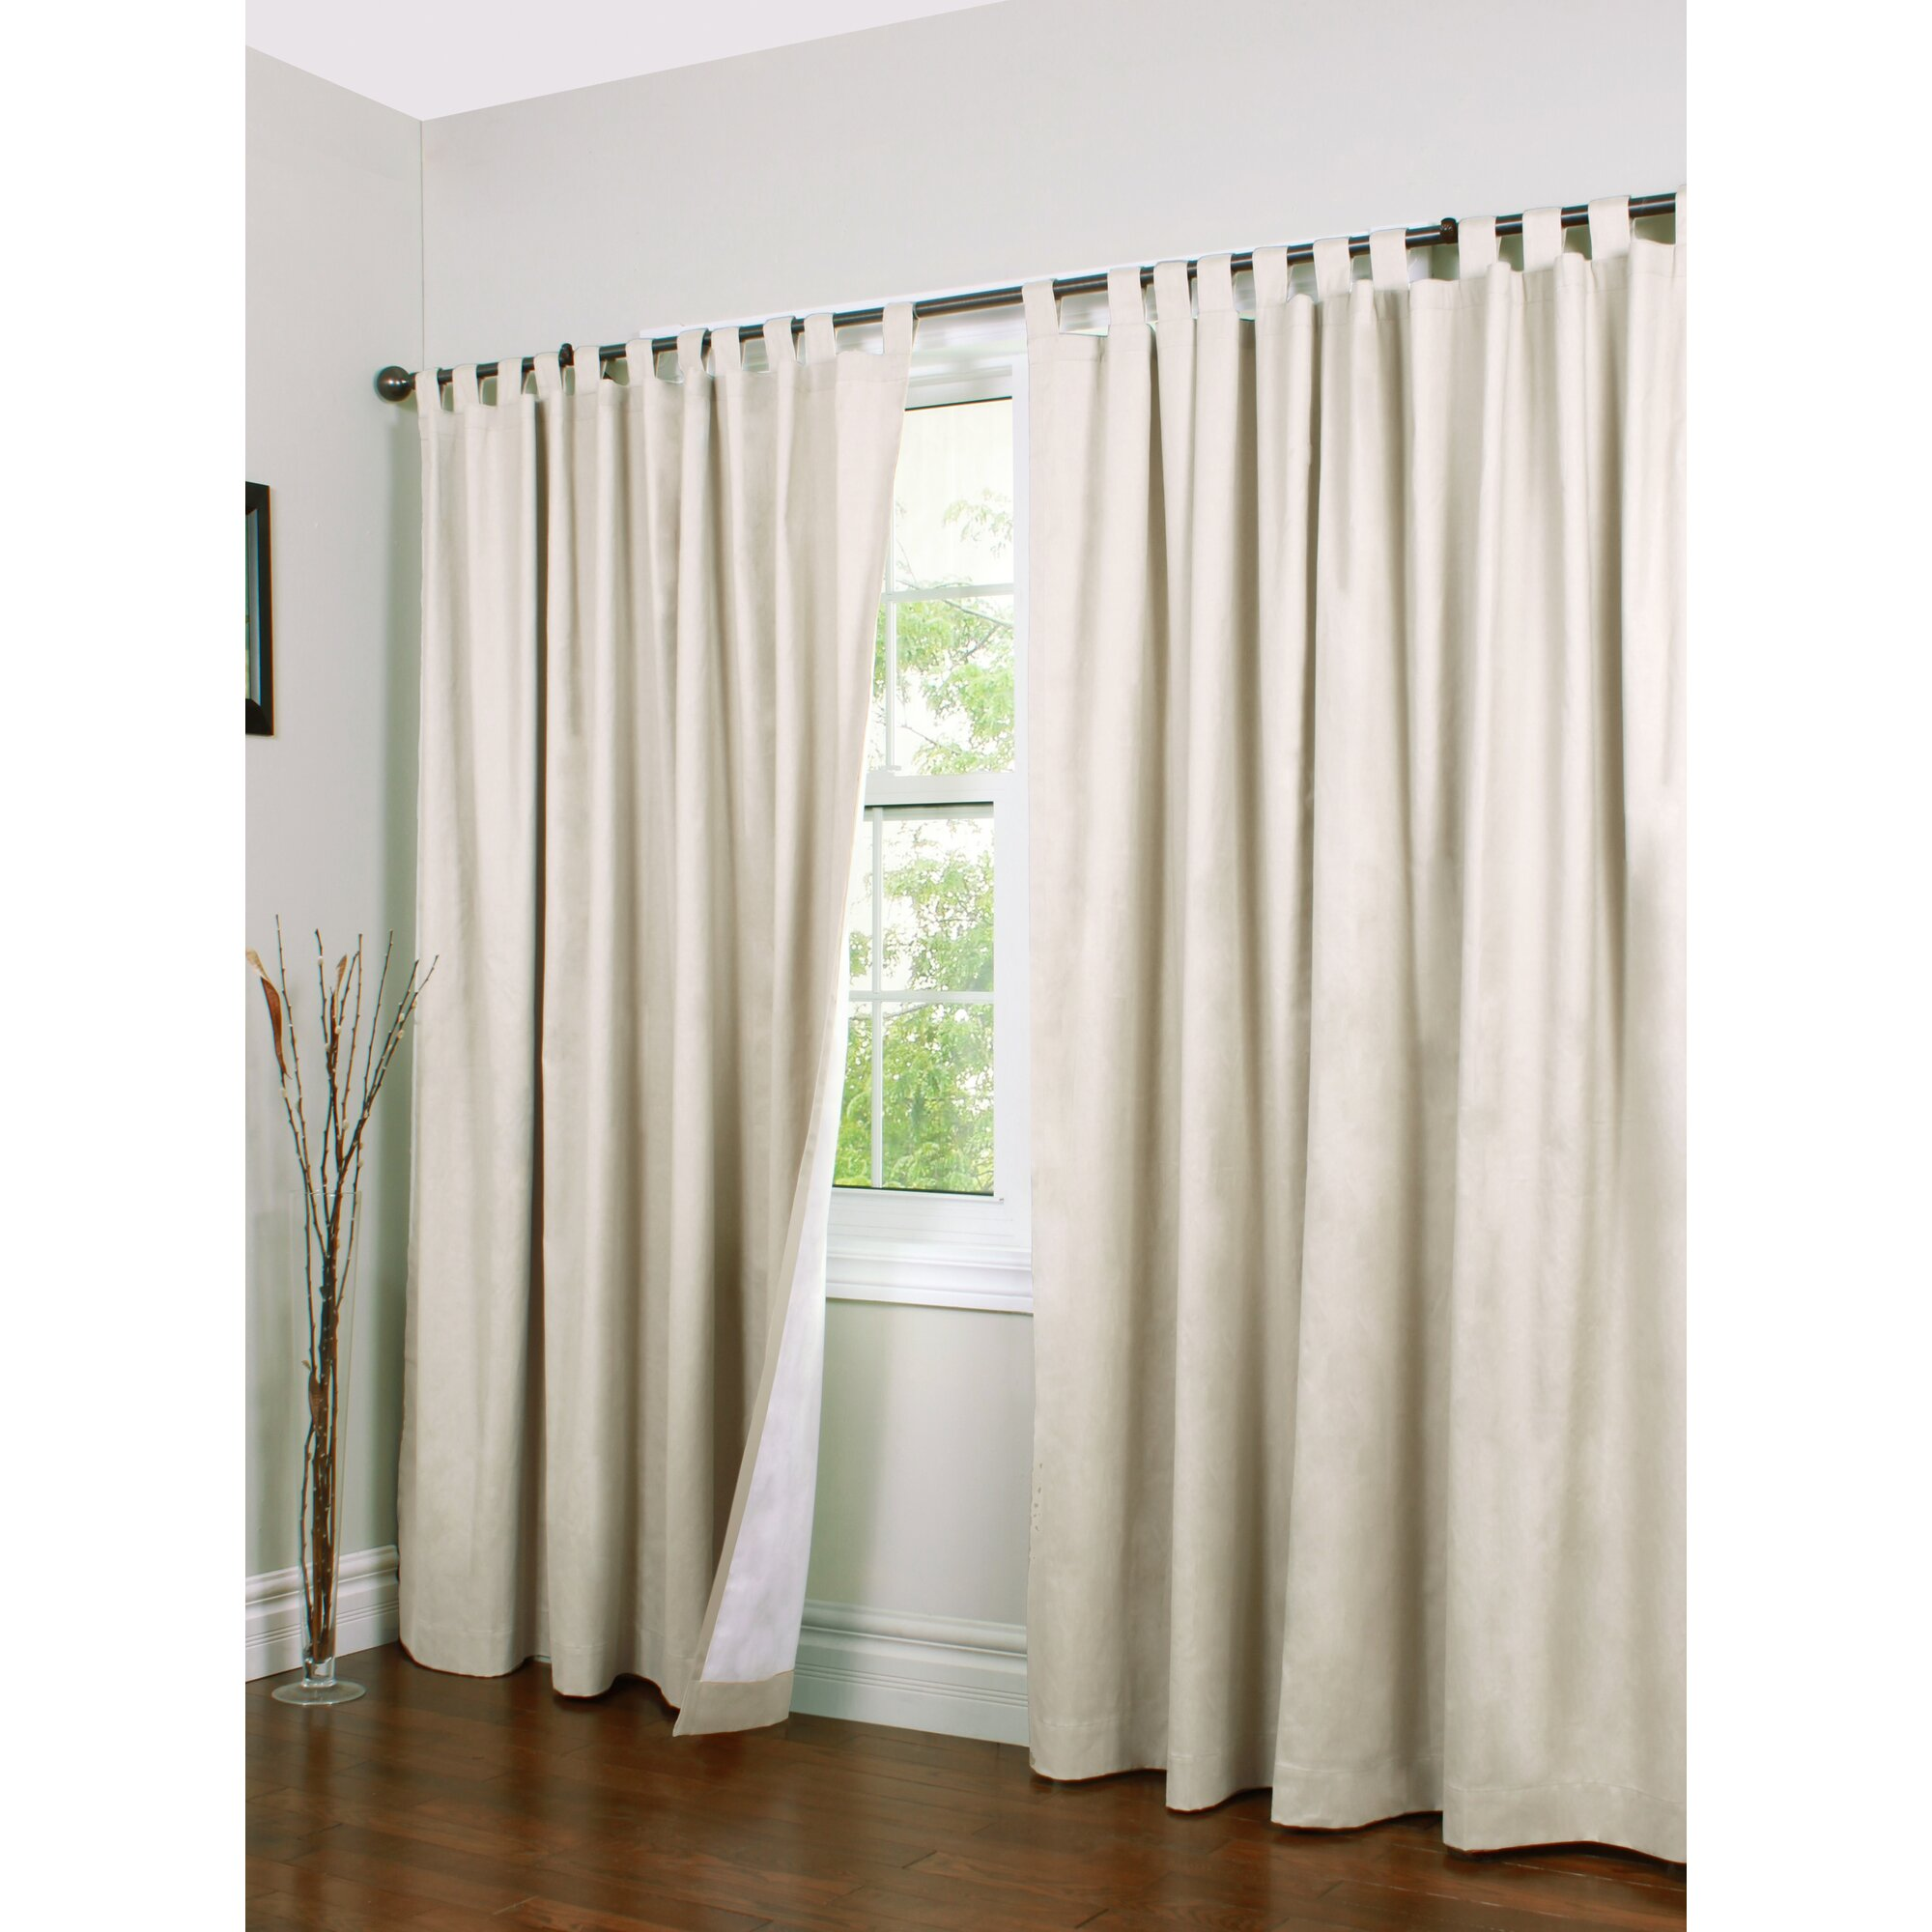 How to make tab top curtains - Alcott Hill Ranger Solid Semi Sheer Thermal Tab Top Curtain Panels